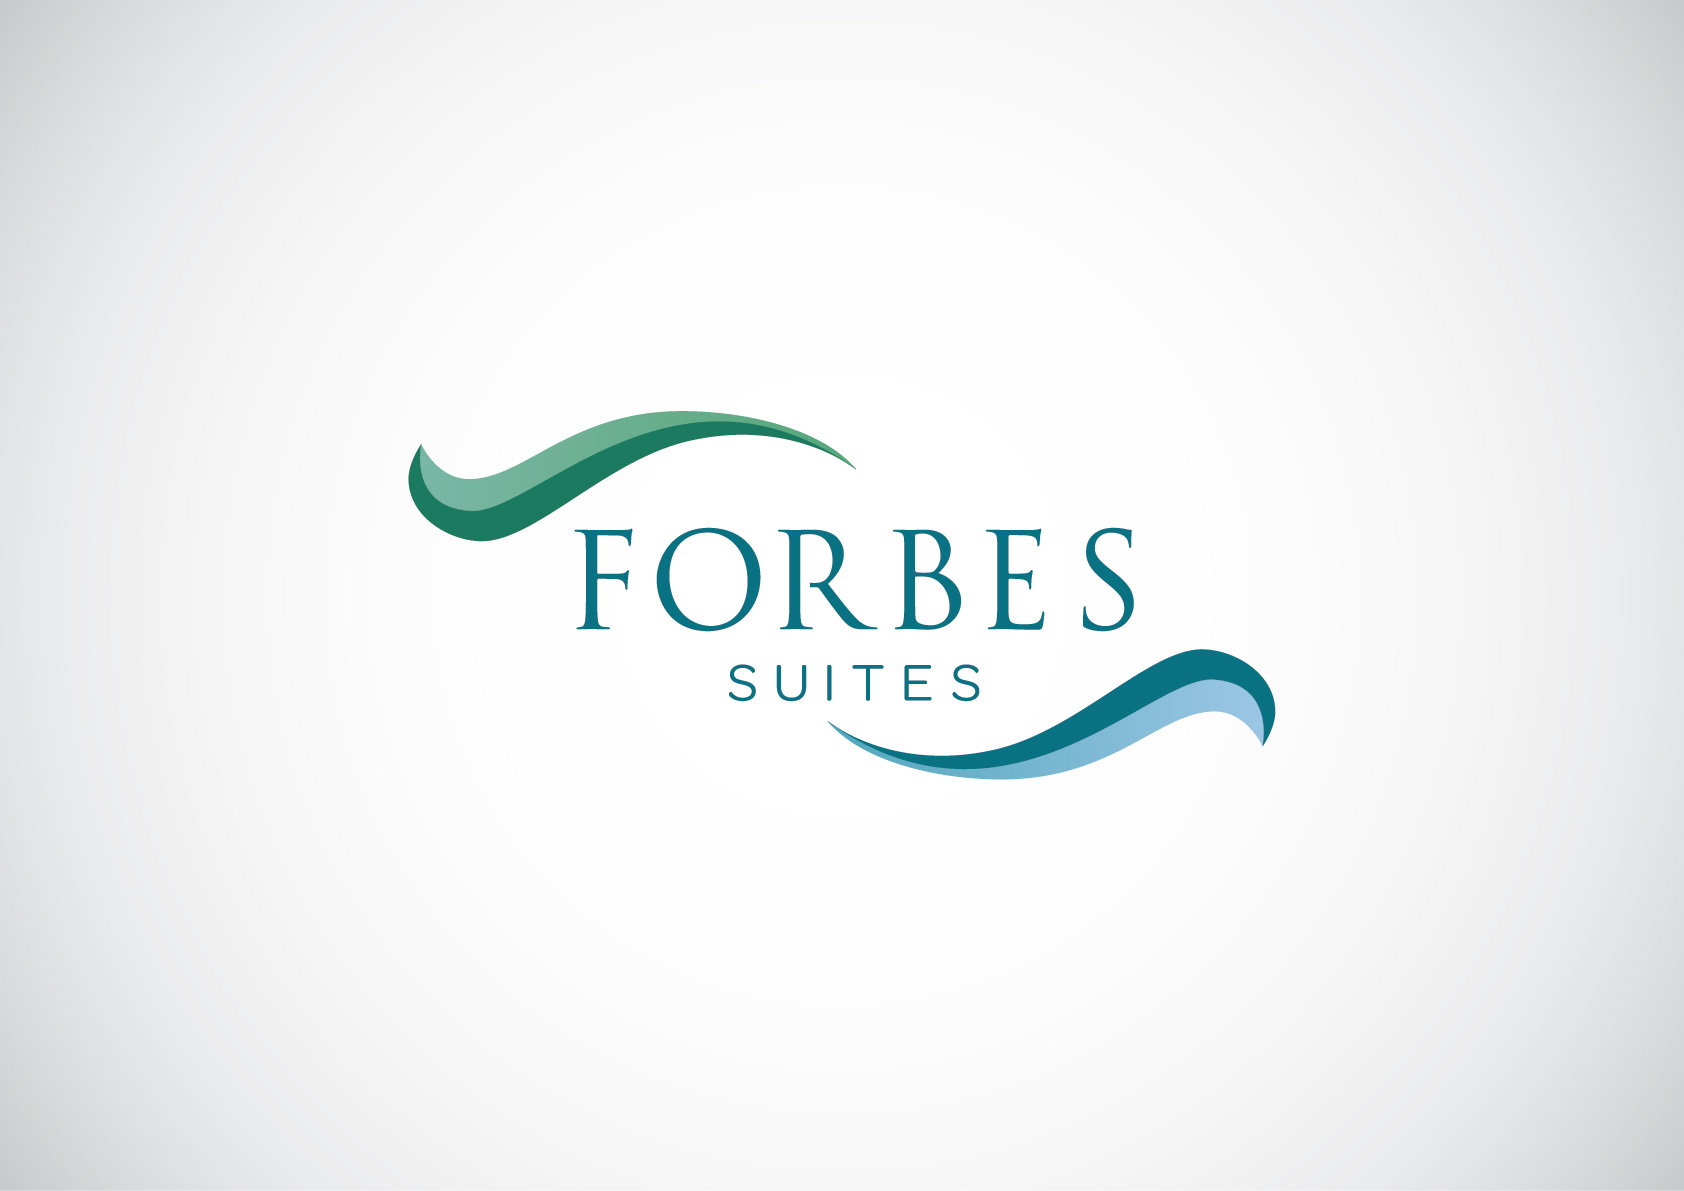 Forbes Suites